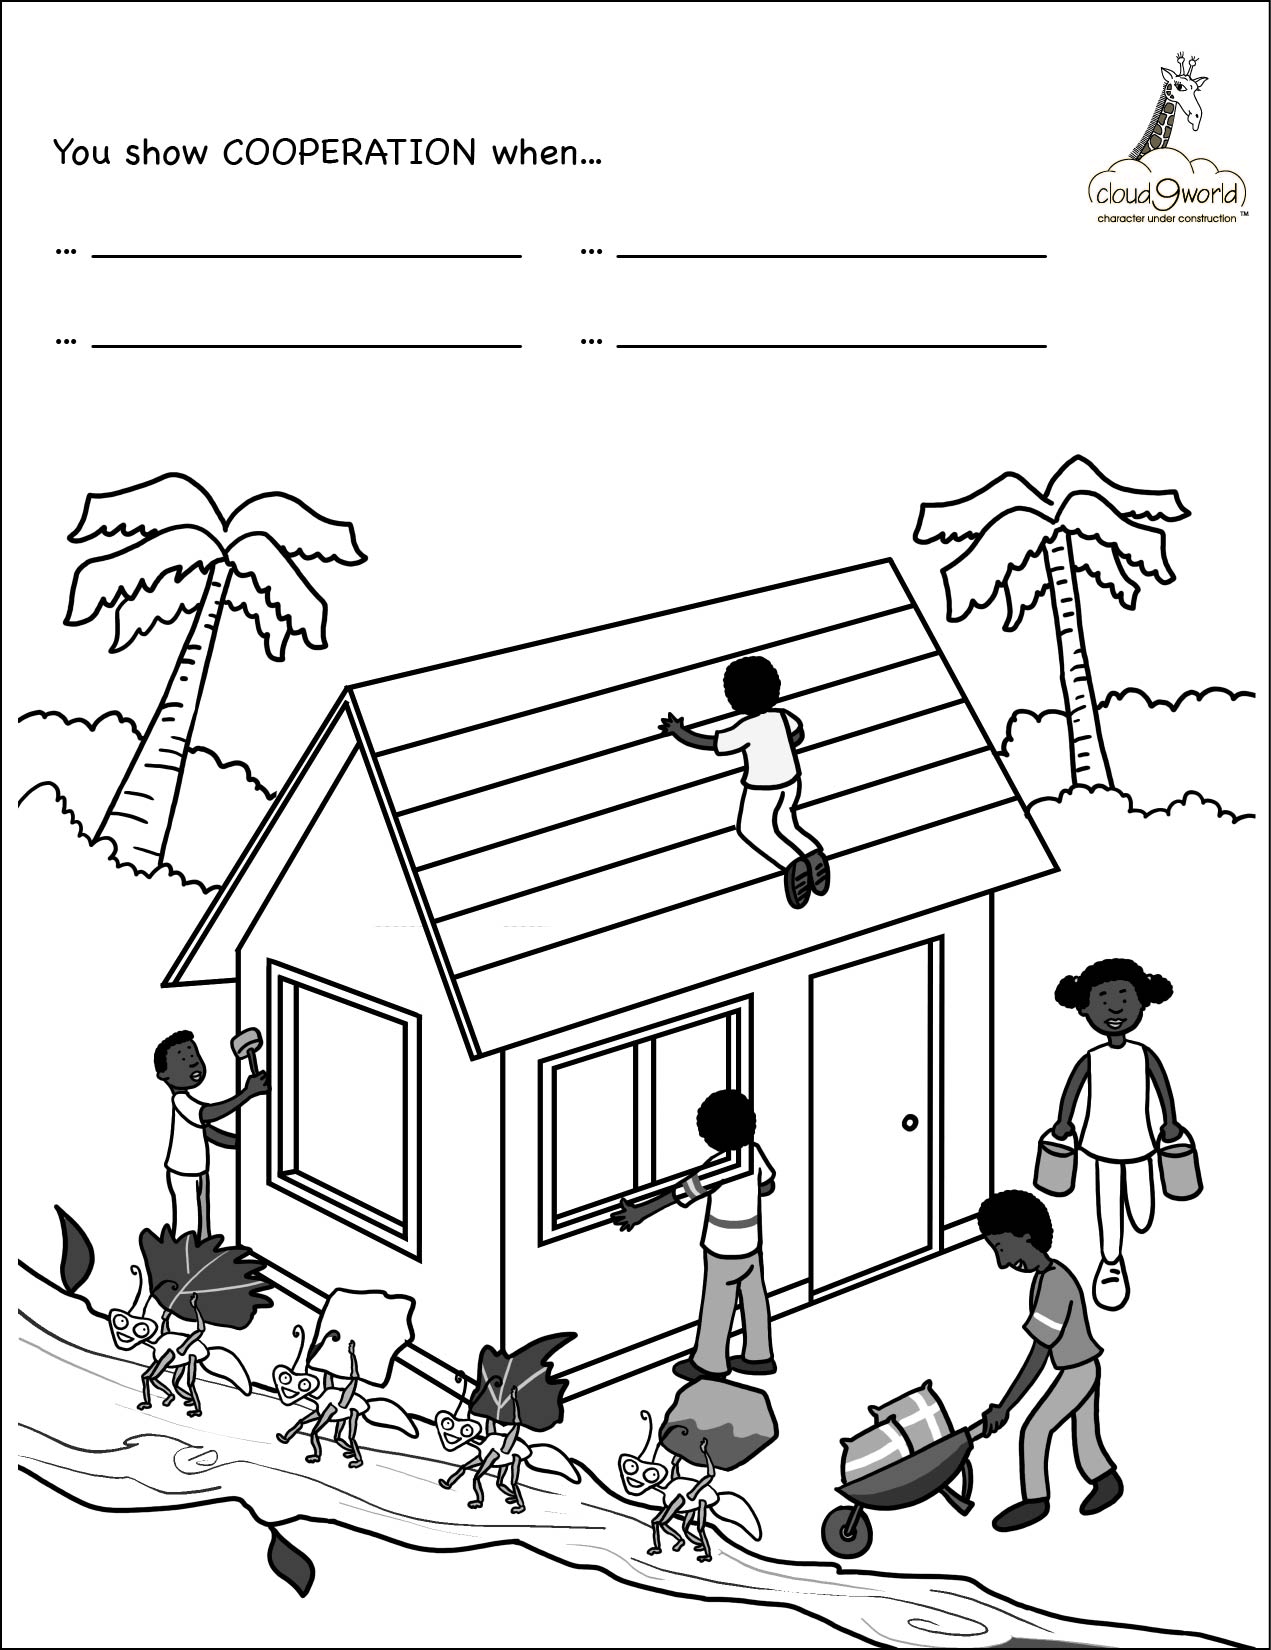 Cooperation Coloring Pages Kids Sketch Coloring Page